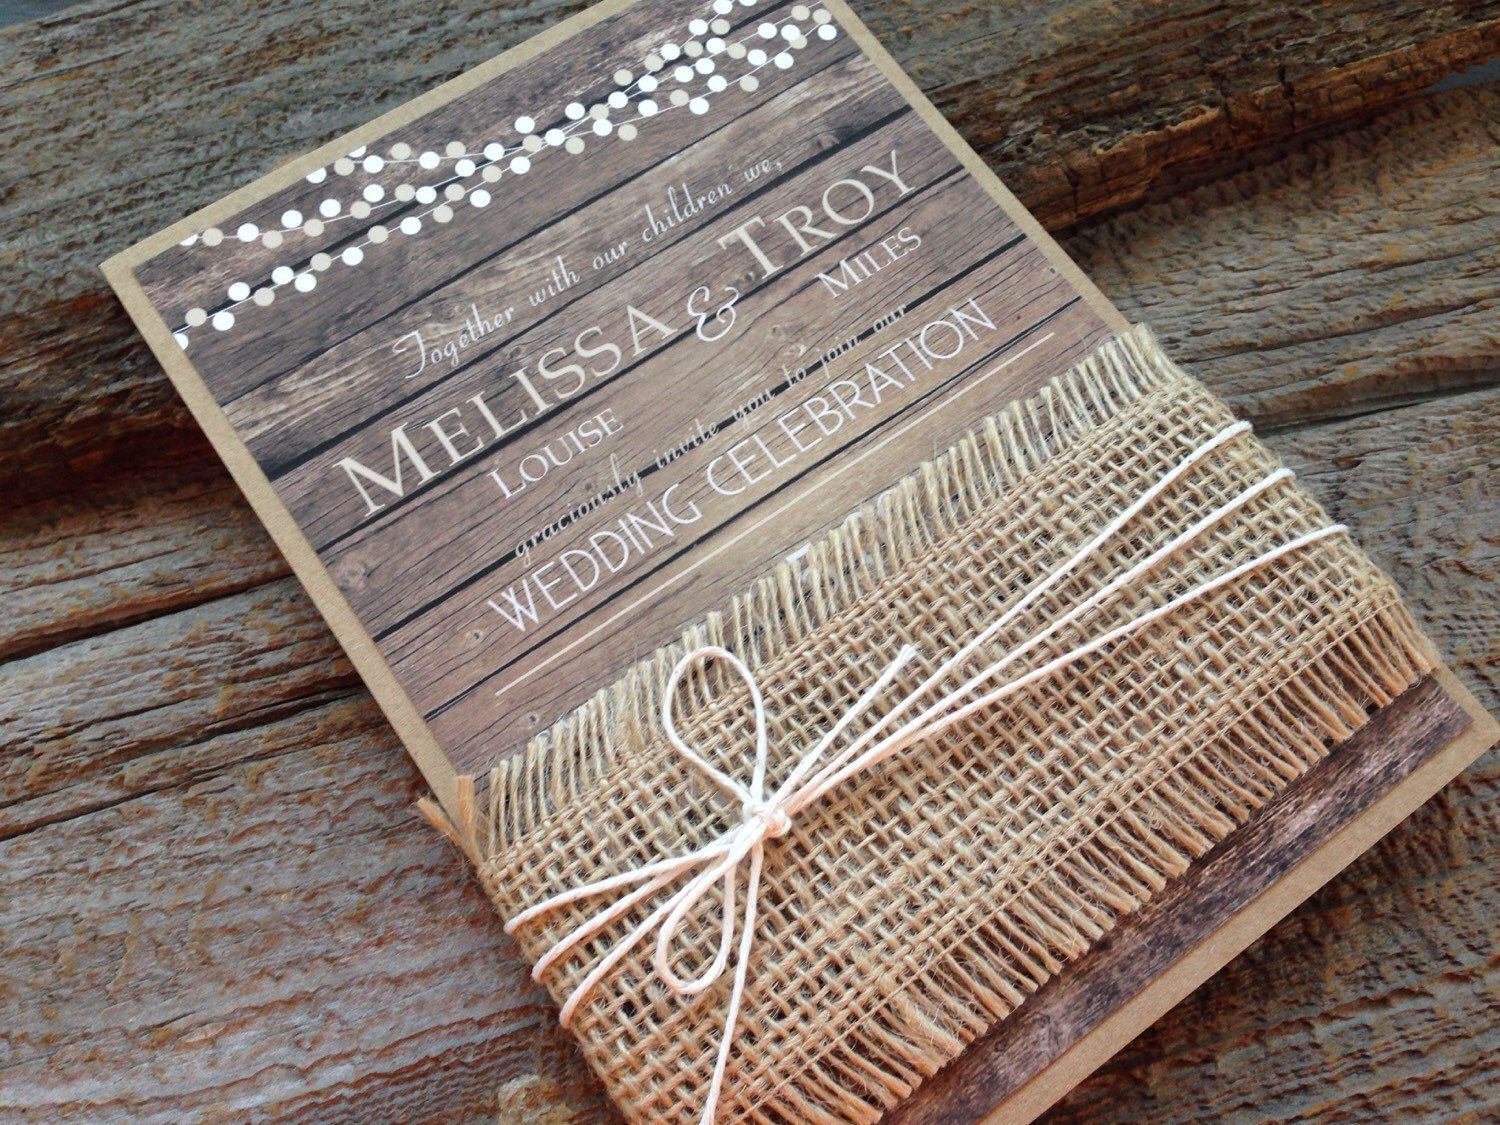 Rustic Barn Country Fall Wood Background Wedding Invitation with Light Strings by CCPrintsbyTabitha on Etsy https://www.etsy.com/listing/243091822/rustic-barn-country-fall-wood-background